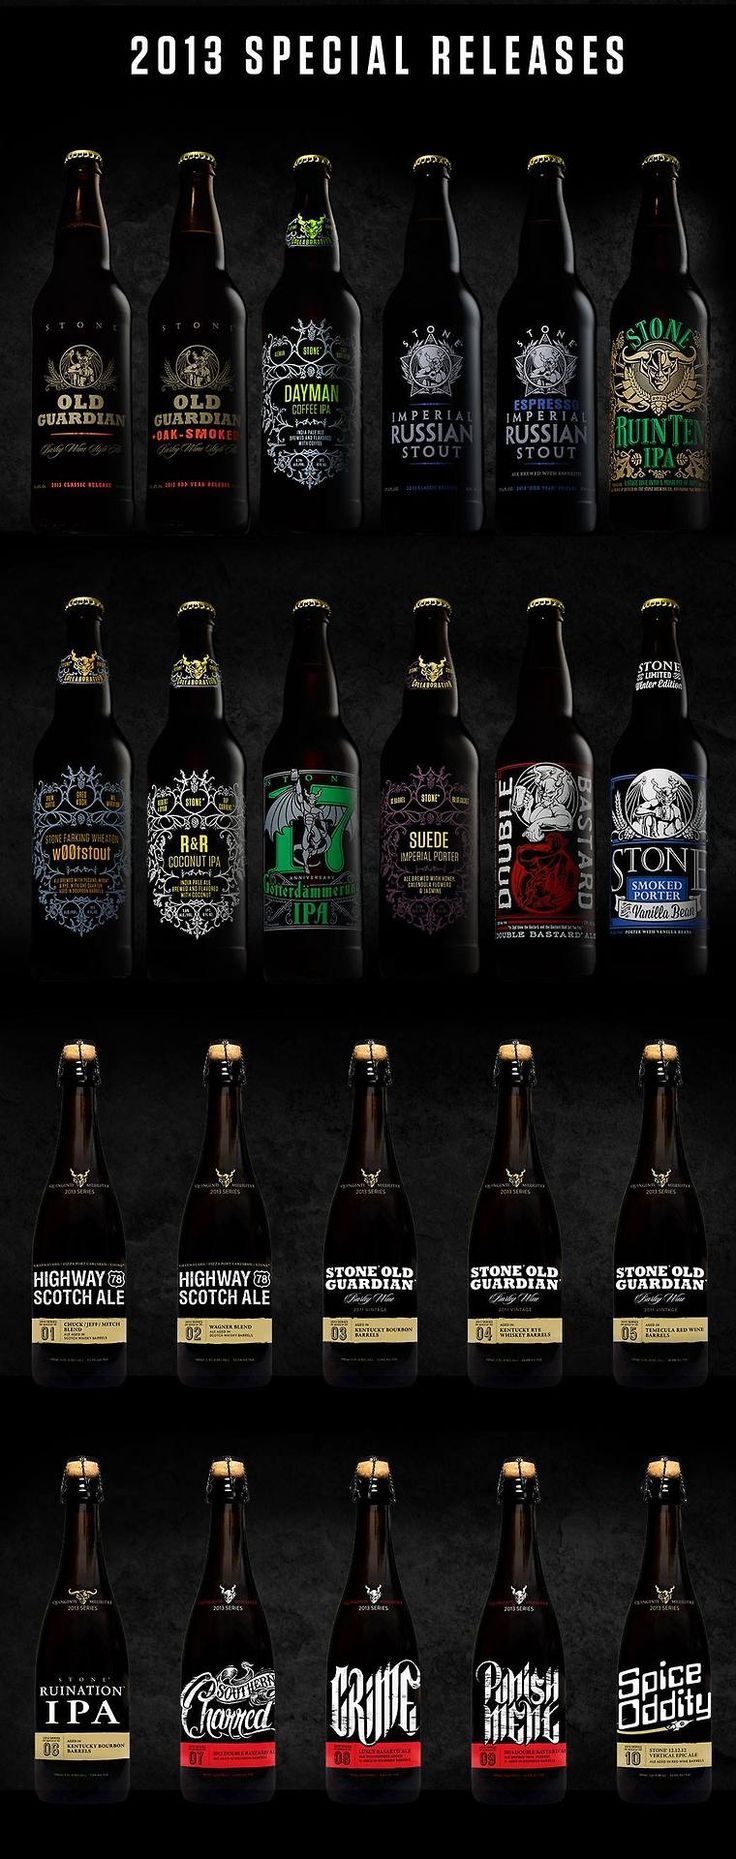 Relive 12 months and more than 70 beers with us, then rejoice, knowing 2014 holds even MORE in store for Stone fans.